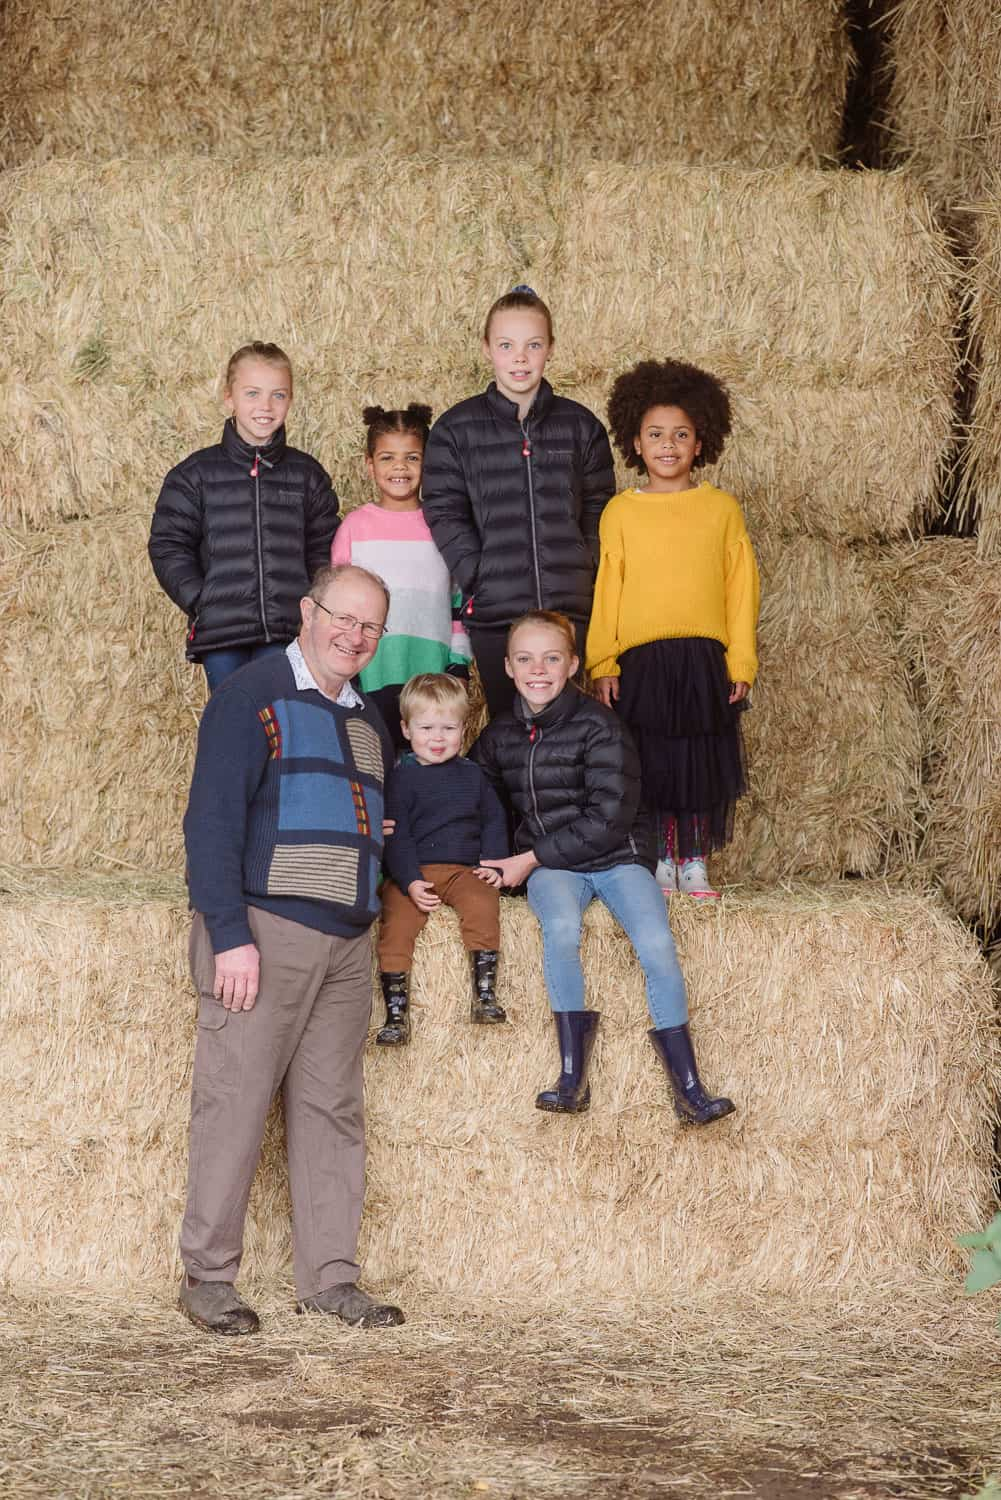 Grandchildren in a hayshed